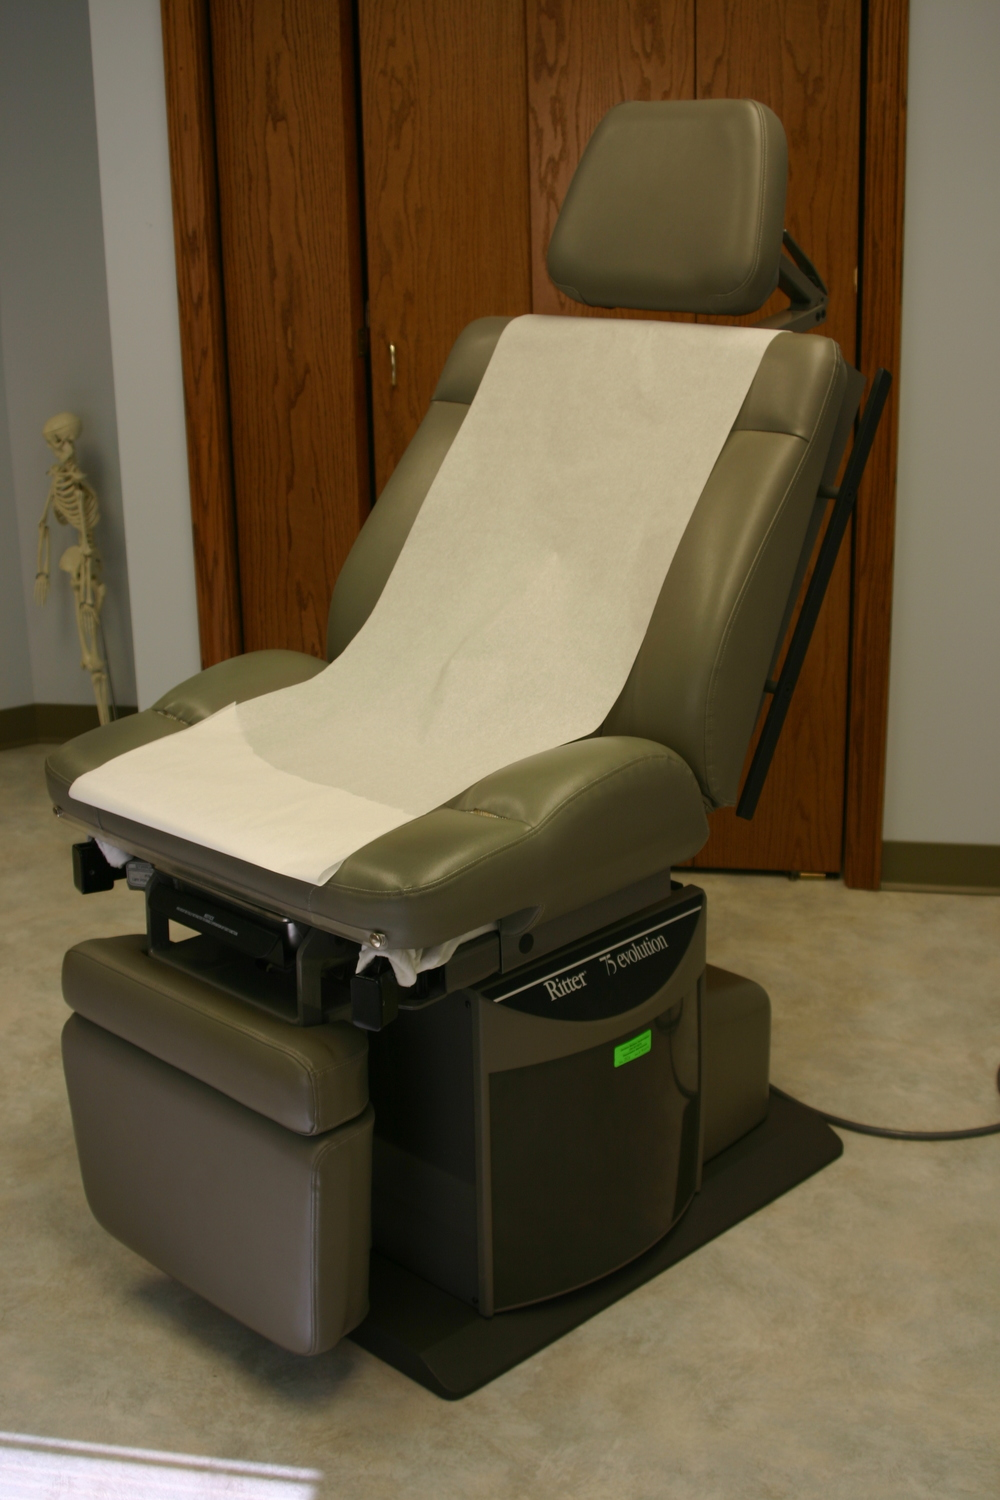 New Venture Medical Research Chair.JPG